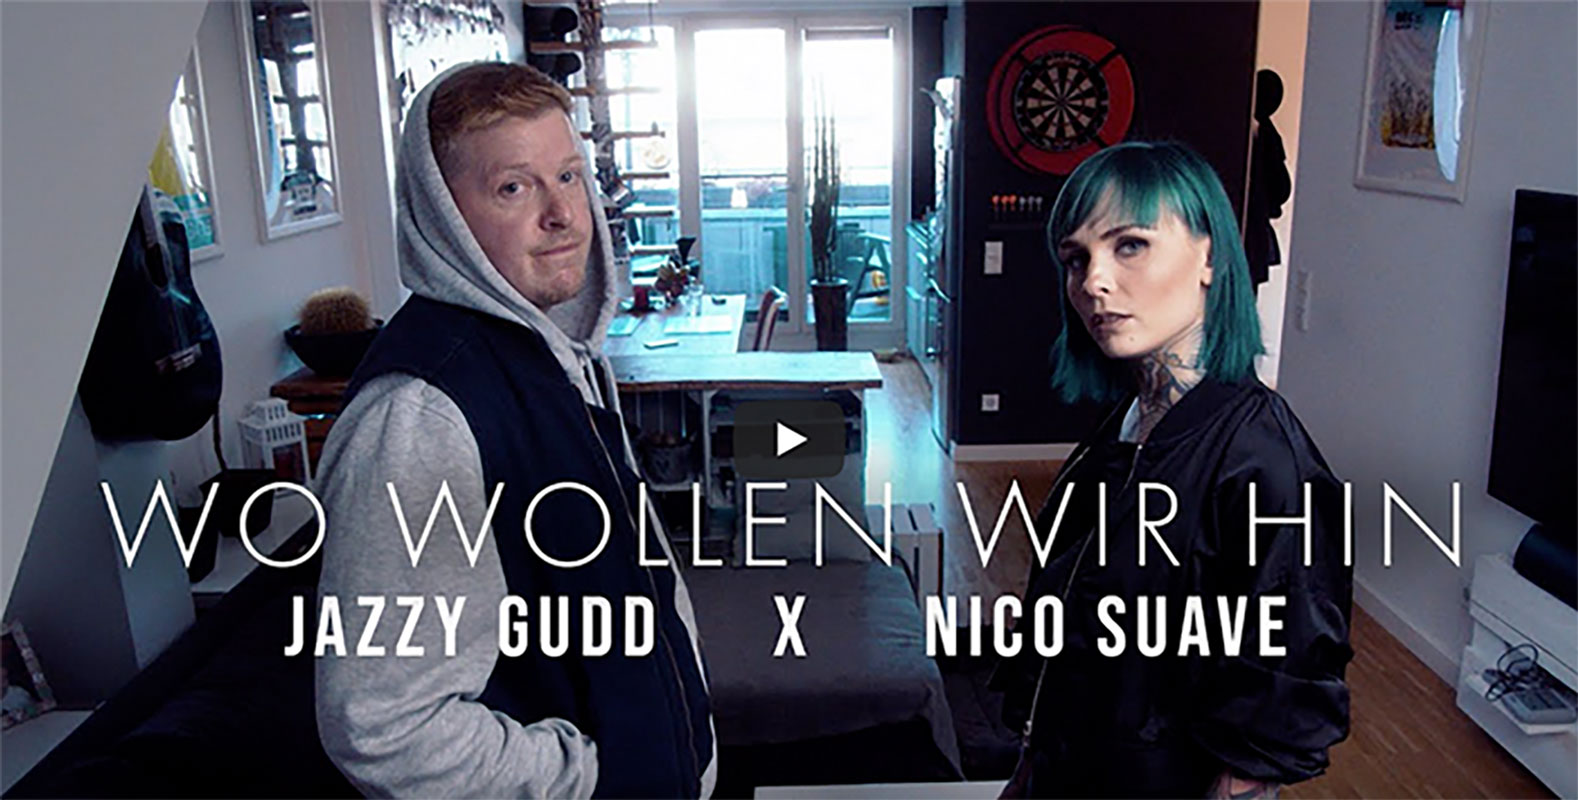 Upcoming: Nico Suave x Jazzy Gudd - Wo Wollen Wir Hin